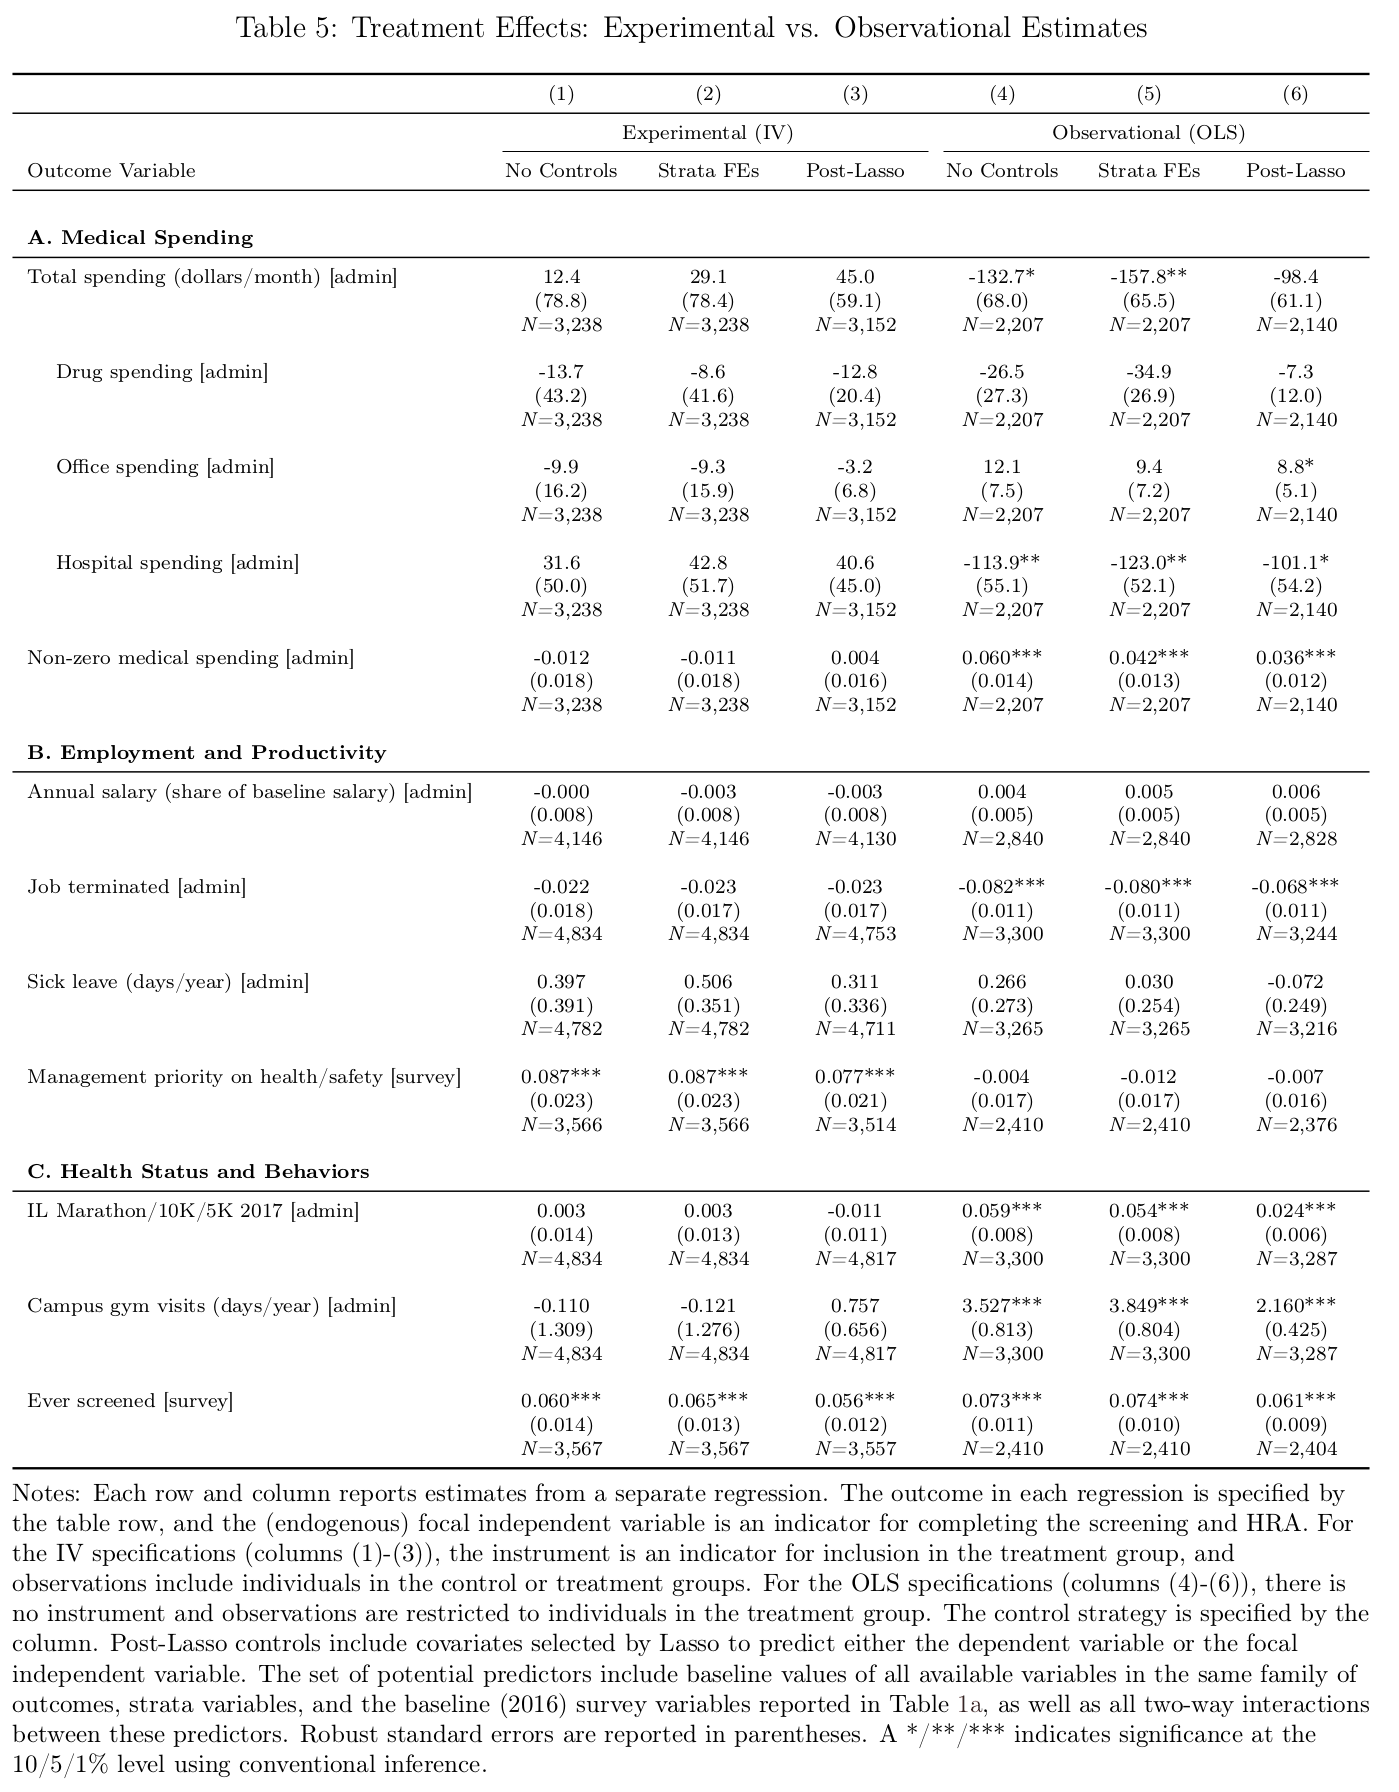 Table 5, comparing the randomized estimate with the correlational estimates